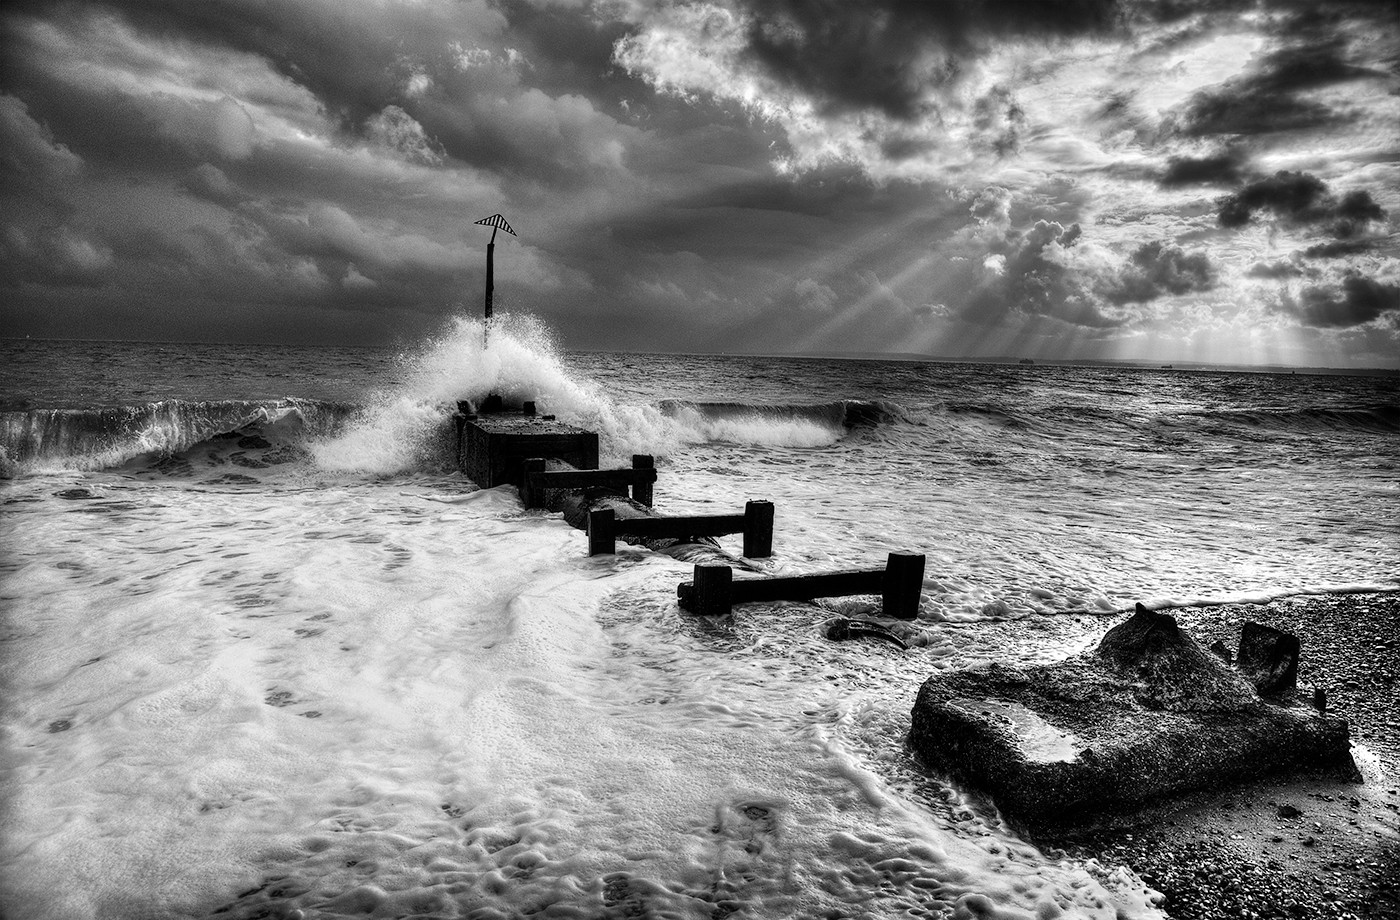 The Outfall